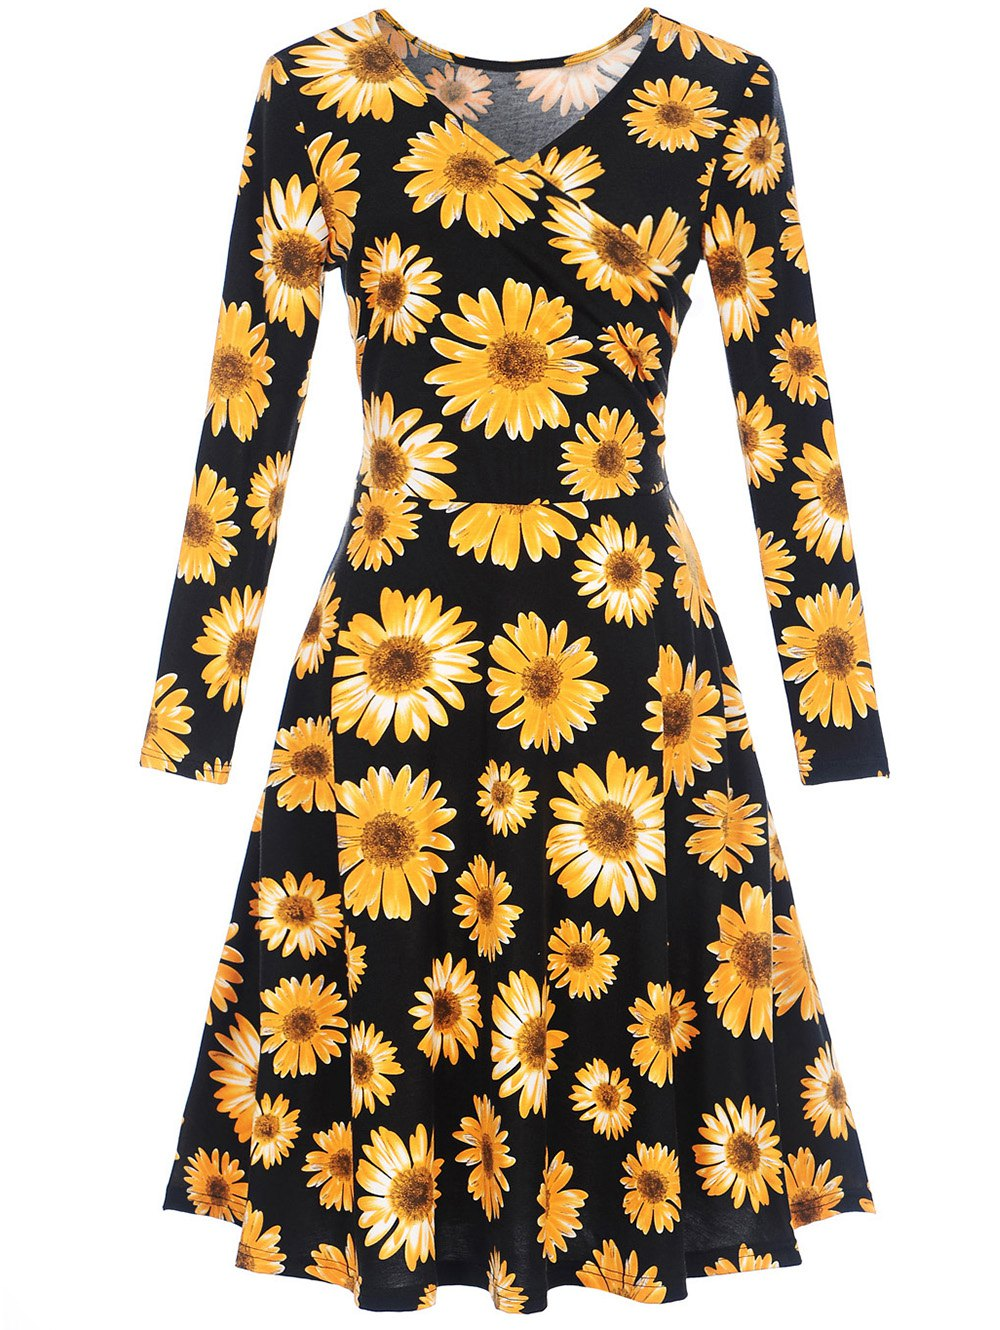 Discount Long Sleeve Sunflower Print Surplice Dress